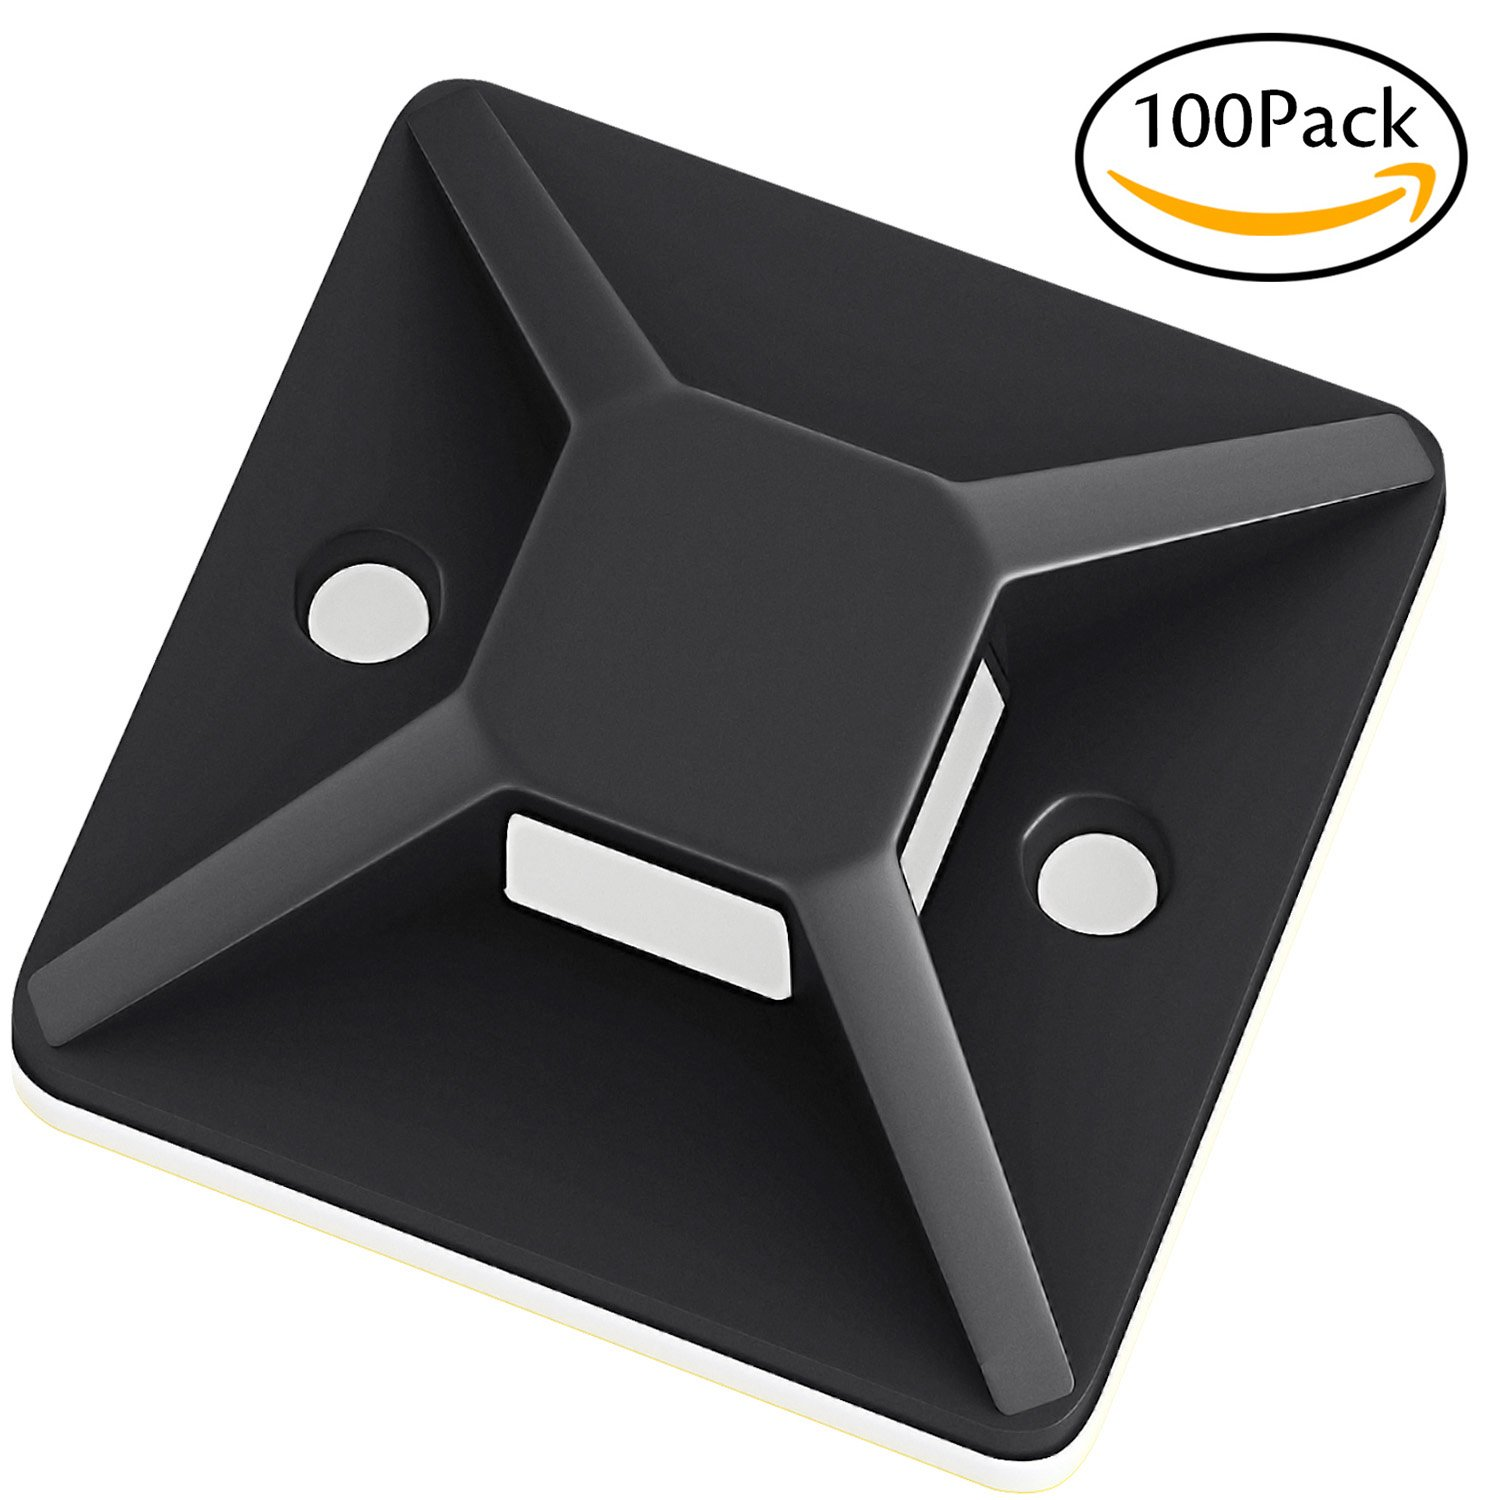 Anchor These Zip Tie Bases Tools-Free With Sticky Backs Or Use Screw-Holes For Permanent Hold - Adhesive Cable Tie Mounts pack of 100 Frustration-Free Wire Management